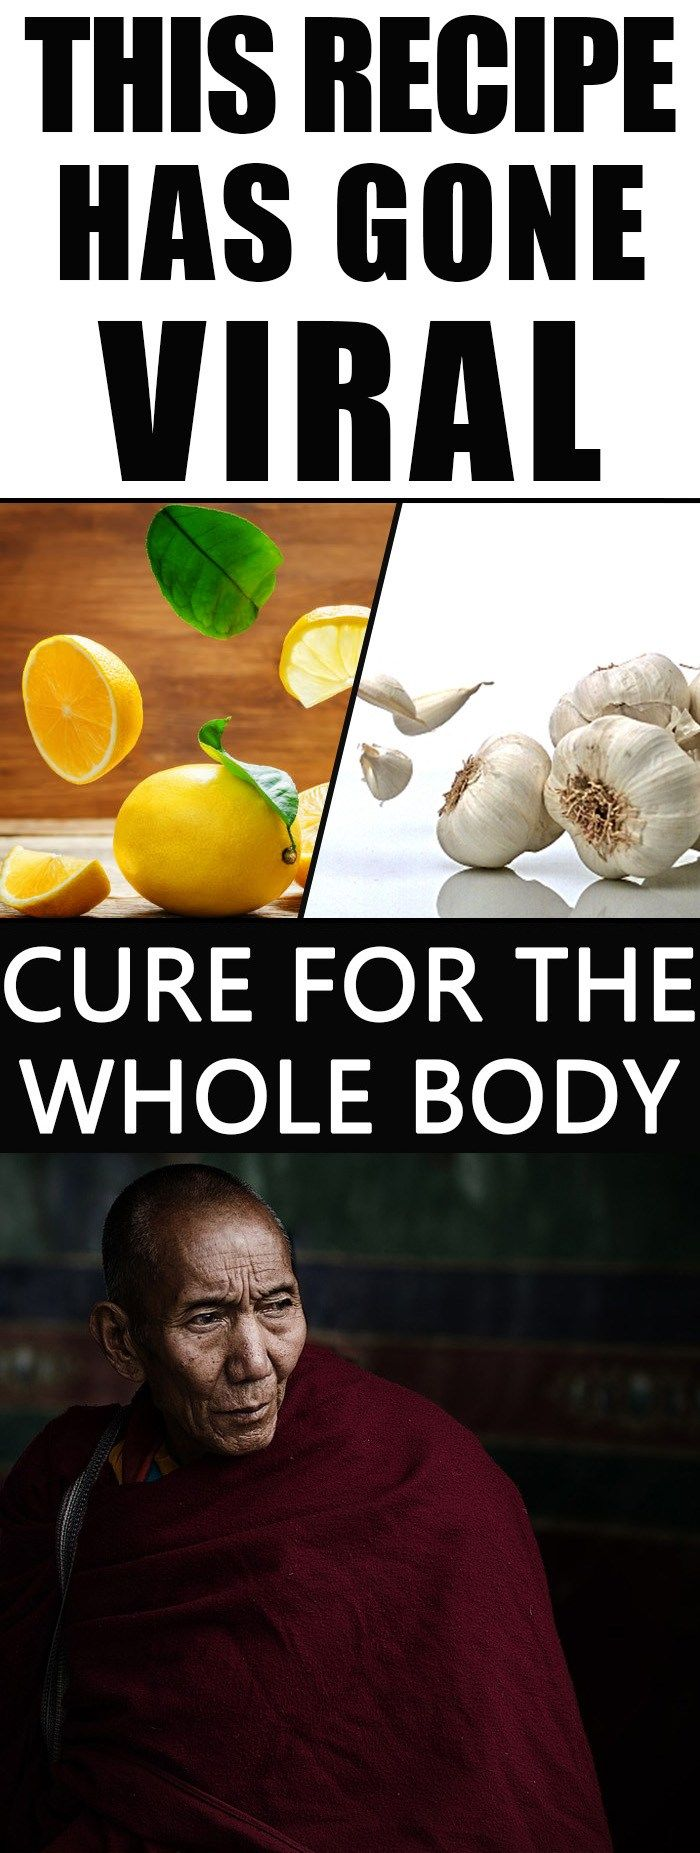 Cure For The Whole Body - Recipe Of The Old Monks Makes Miracles